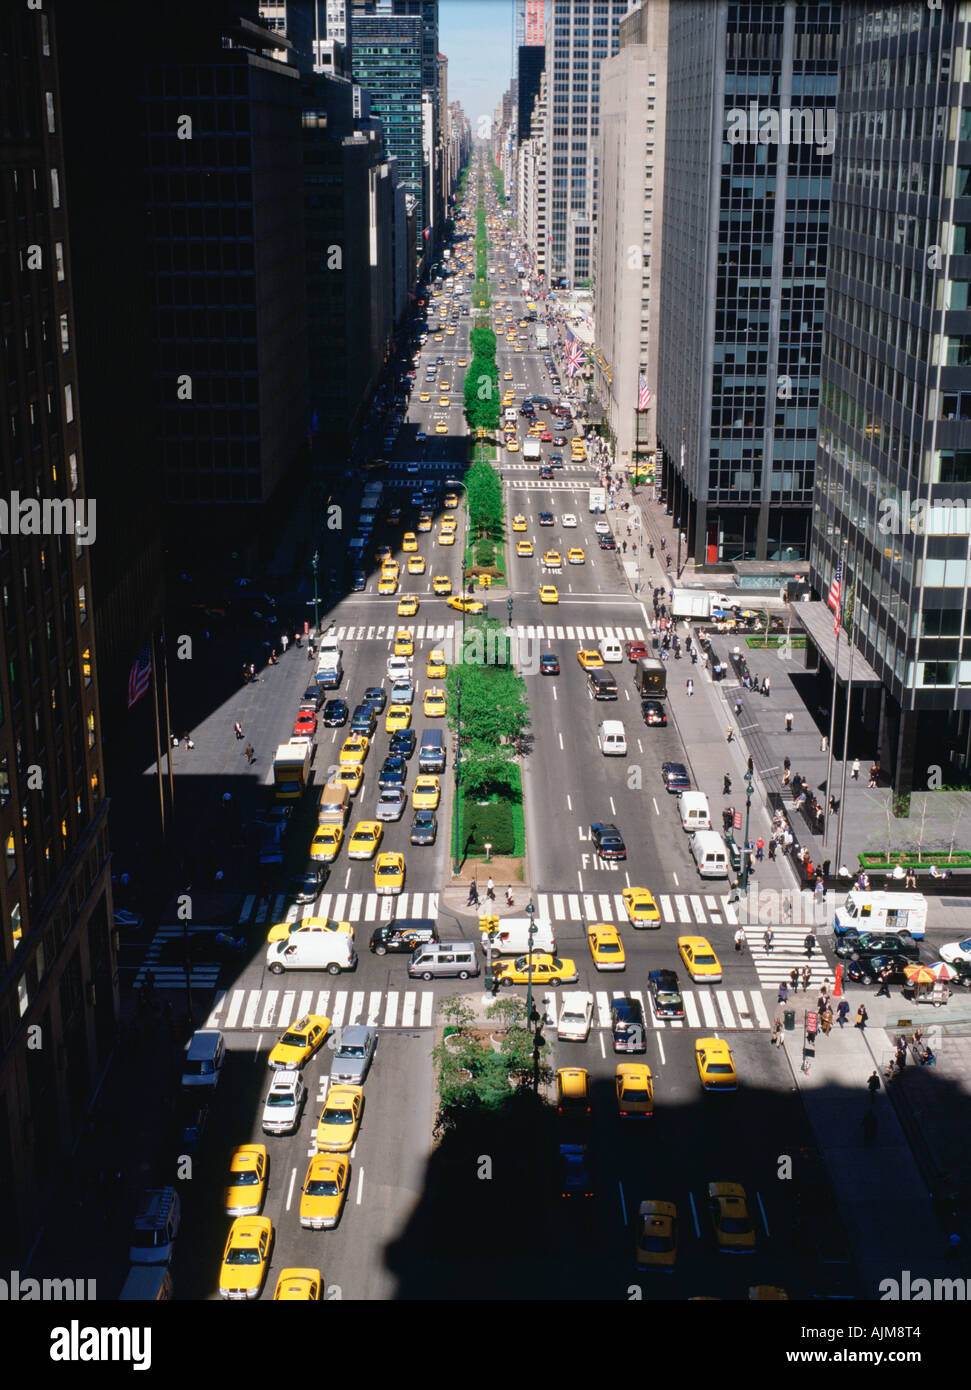 Aerial View Of Park Avenue New York City Stock Photo 8438403 Alamy